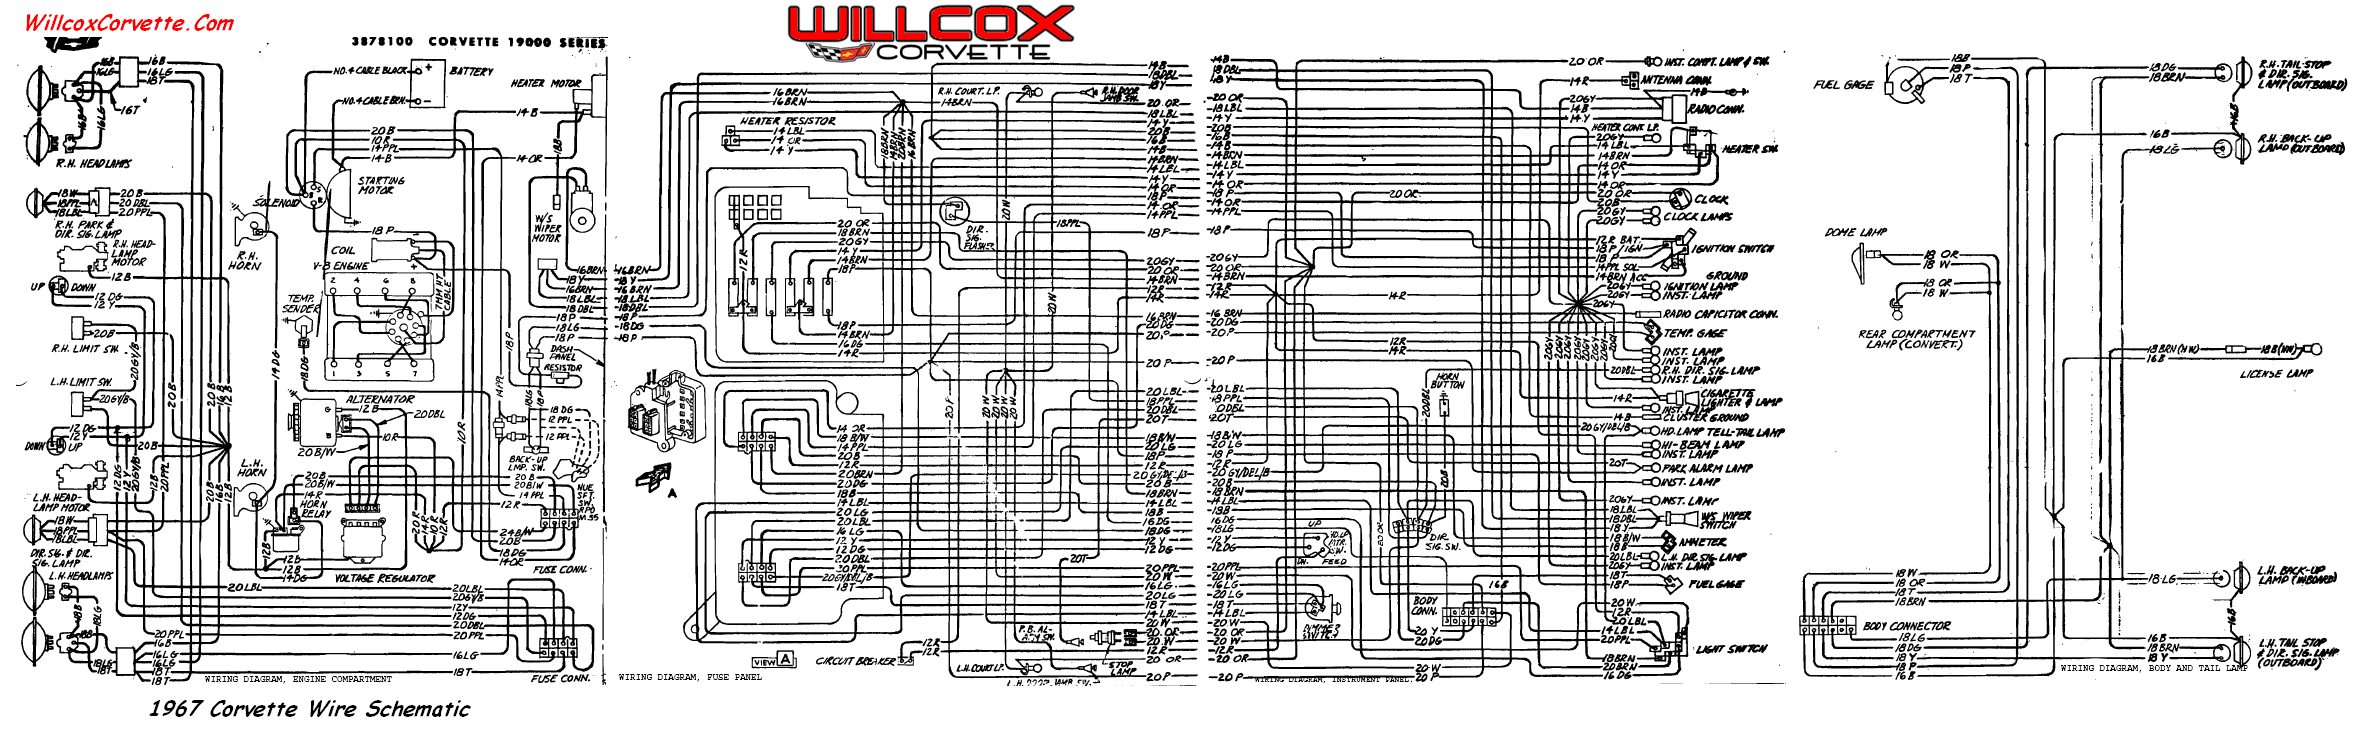 67 wire schematic for tracing wires 1978 corvette wiring diagram pdf 1980 el camino wiring diagram 1998 corvette wiring diagram at gsmportal.co